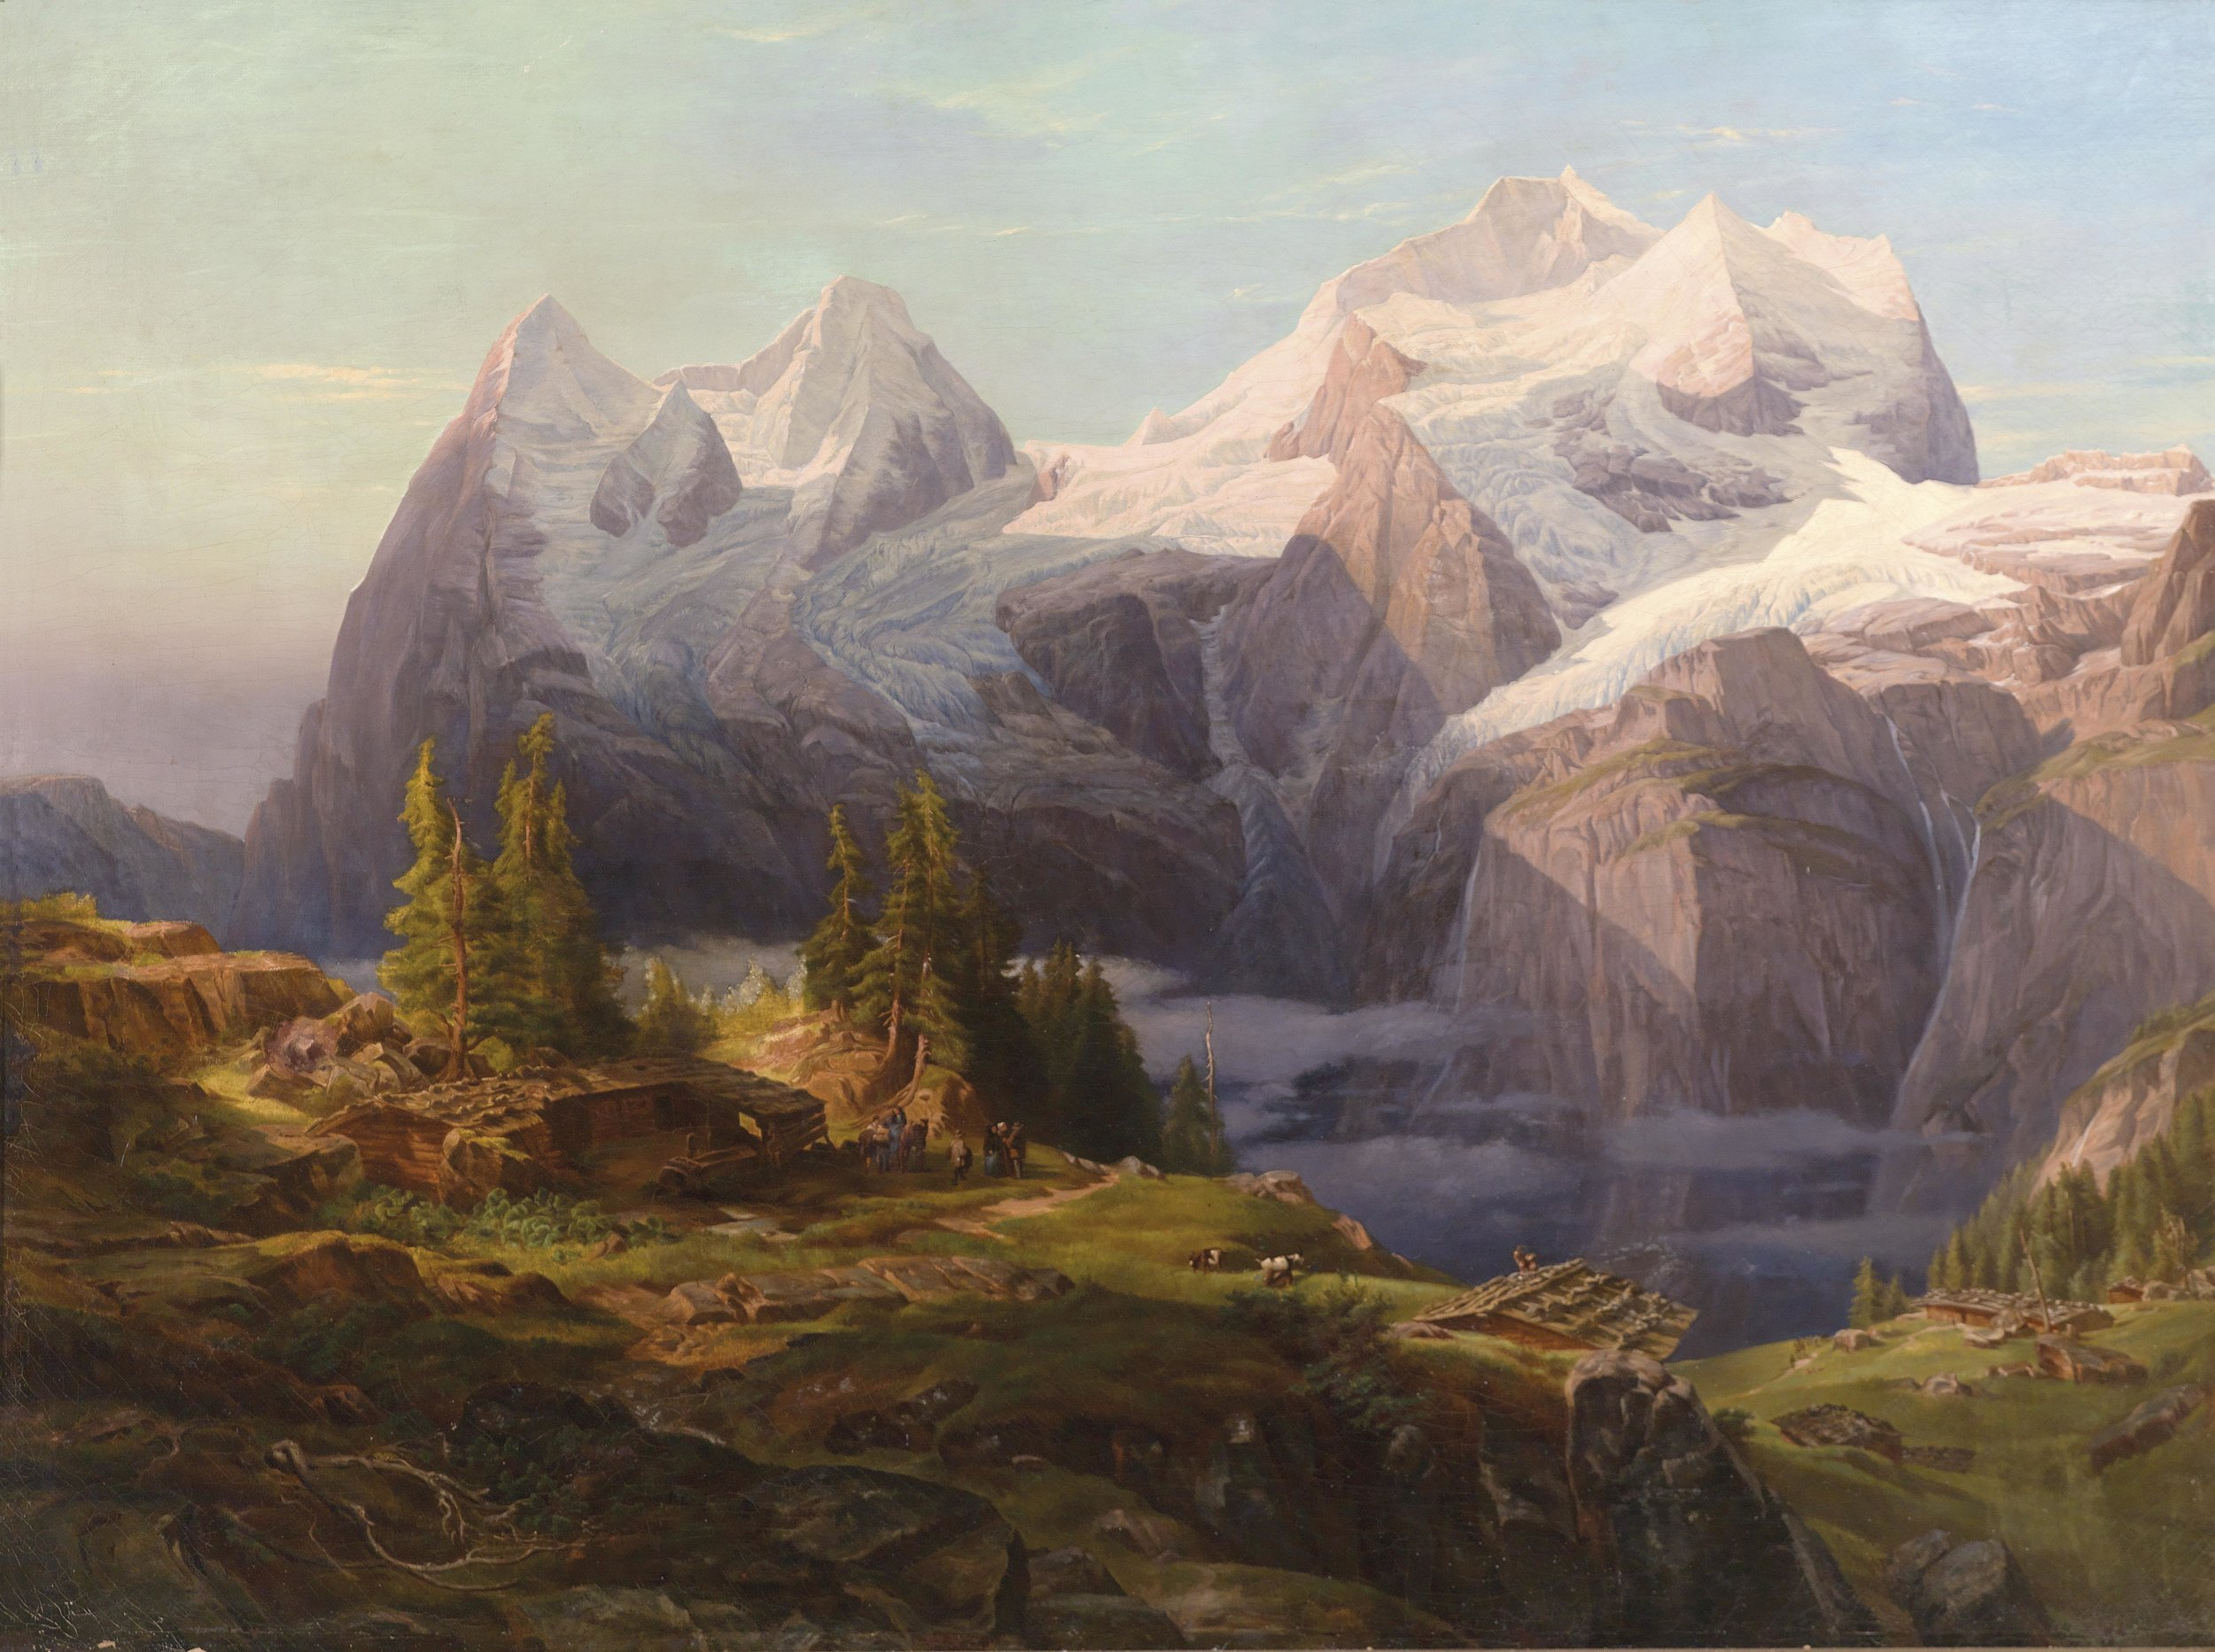 Figure 3 – Anton Hansch's painting of the big three mountains of Eiger, Mönch, and Jungfrau, part of the Swiss Alps (1857).